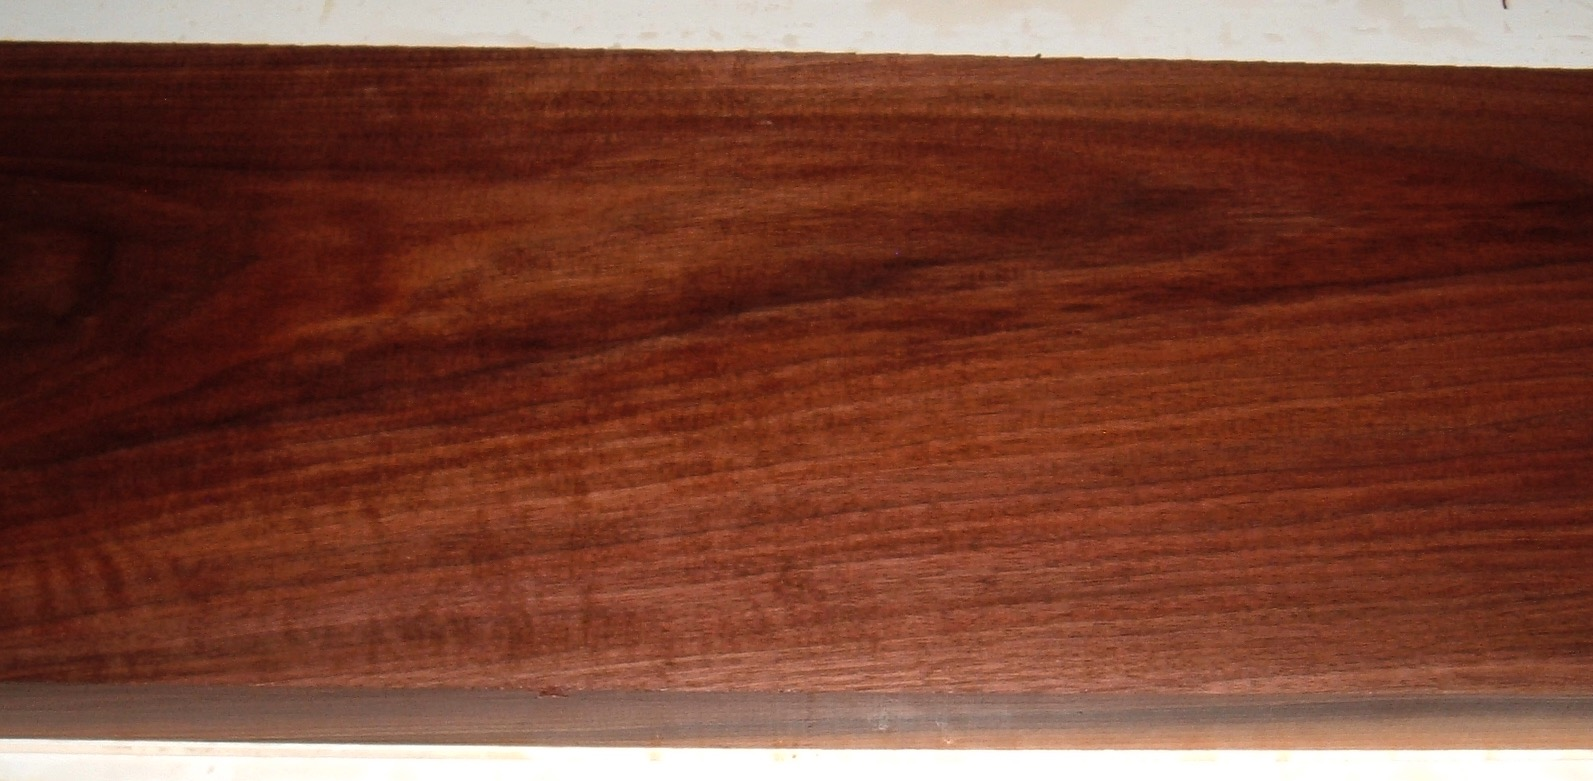 S-2182, +1-13/16x11-1/8x37, Black Walnut